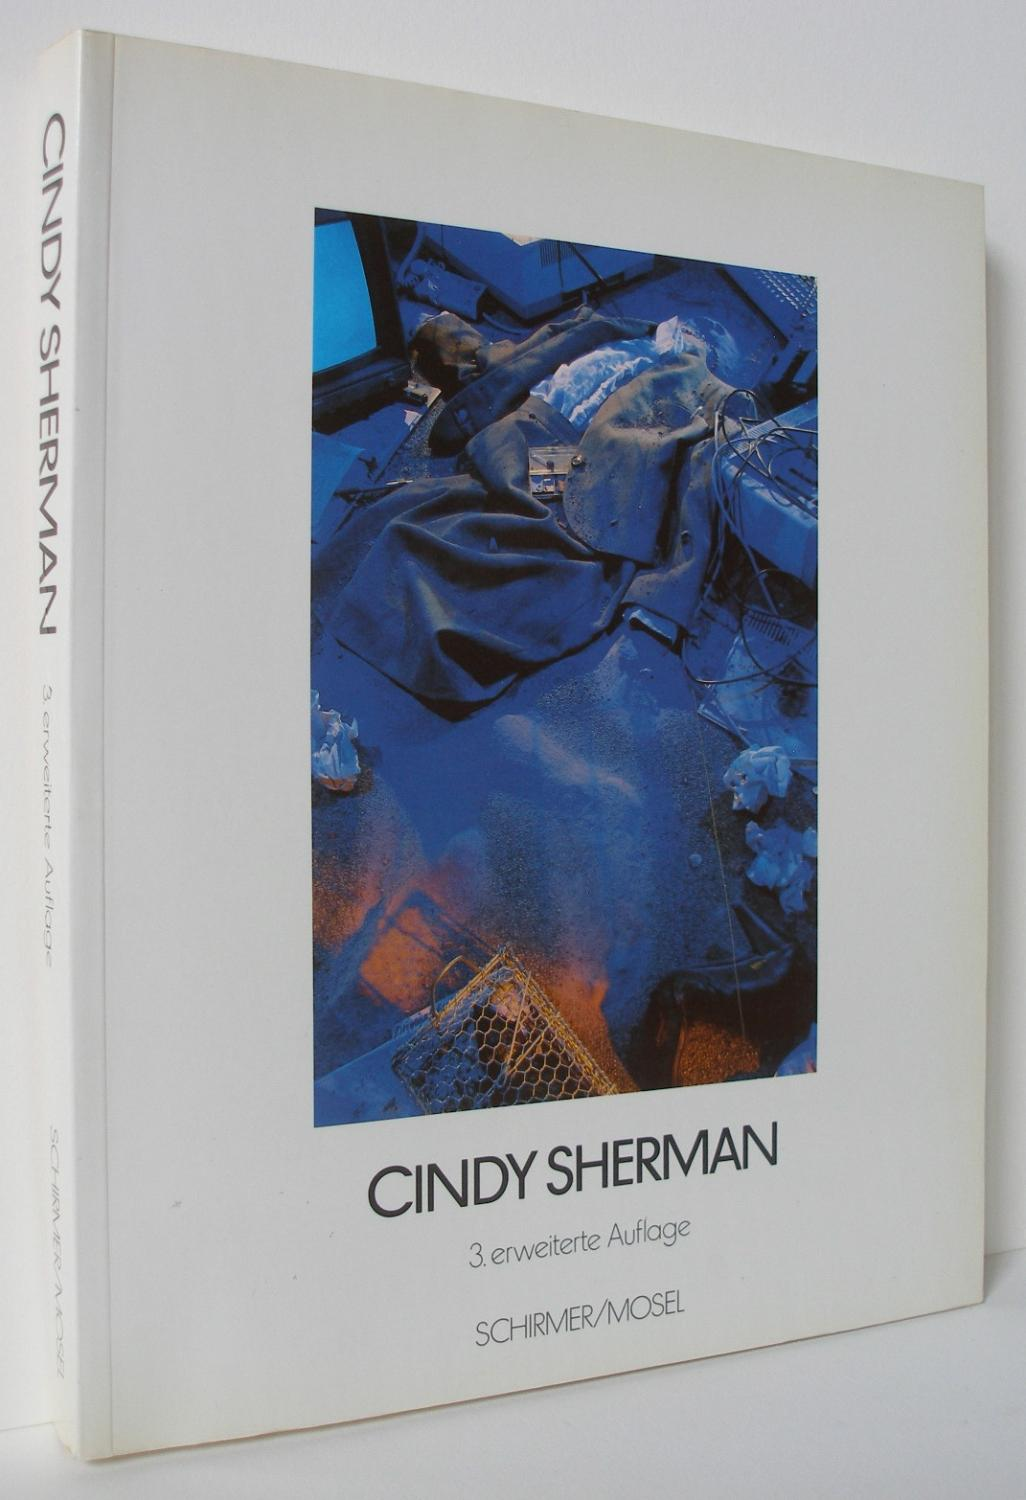 Cindy Sherman (3. erweiterte Auflage) - SHERMAN, Cindy (with text by Els Barents and Peter Schjeldahl)